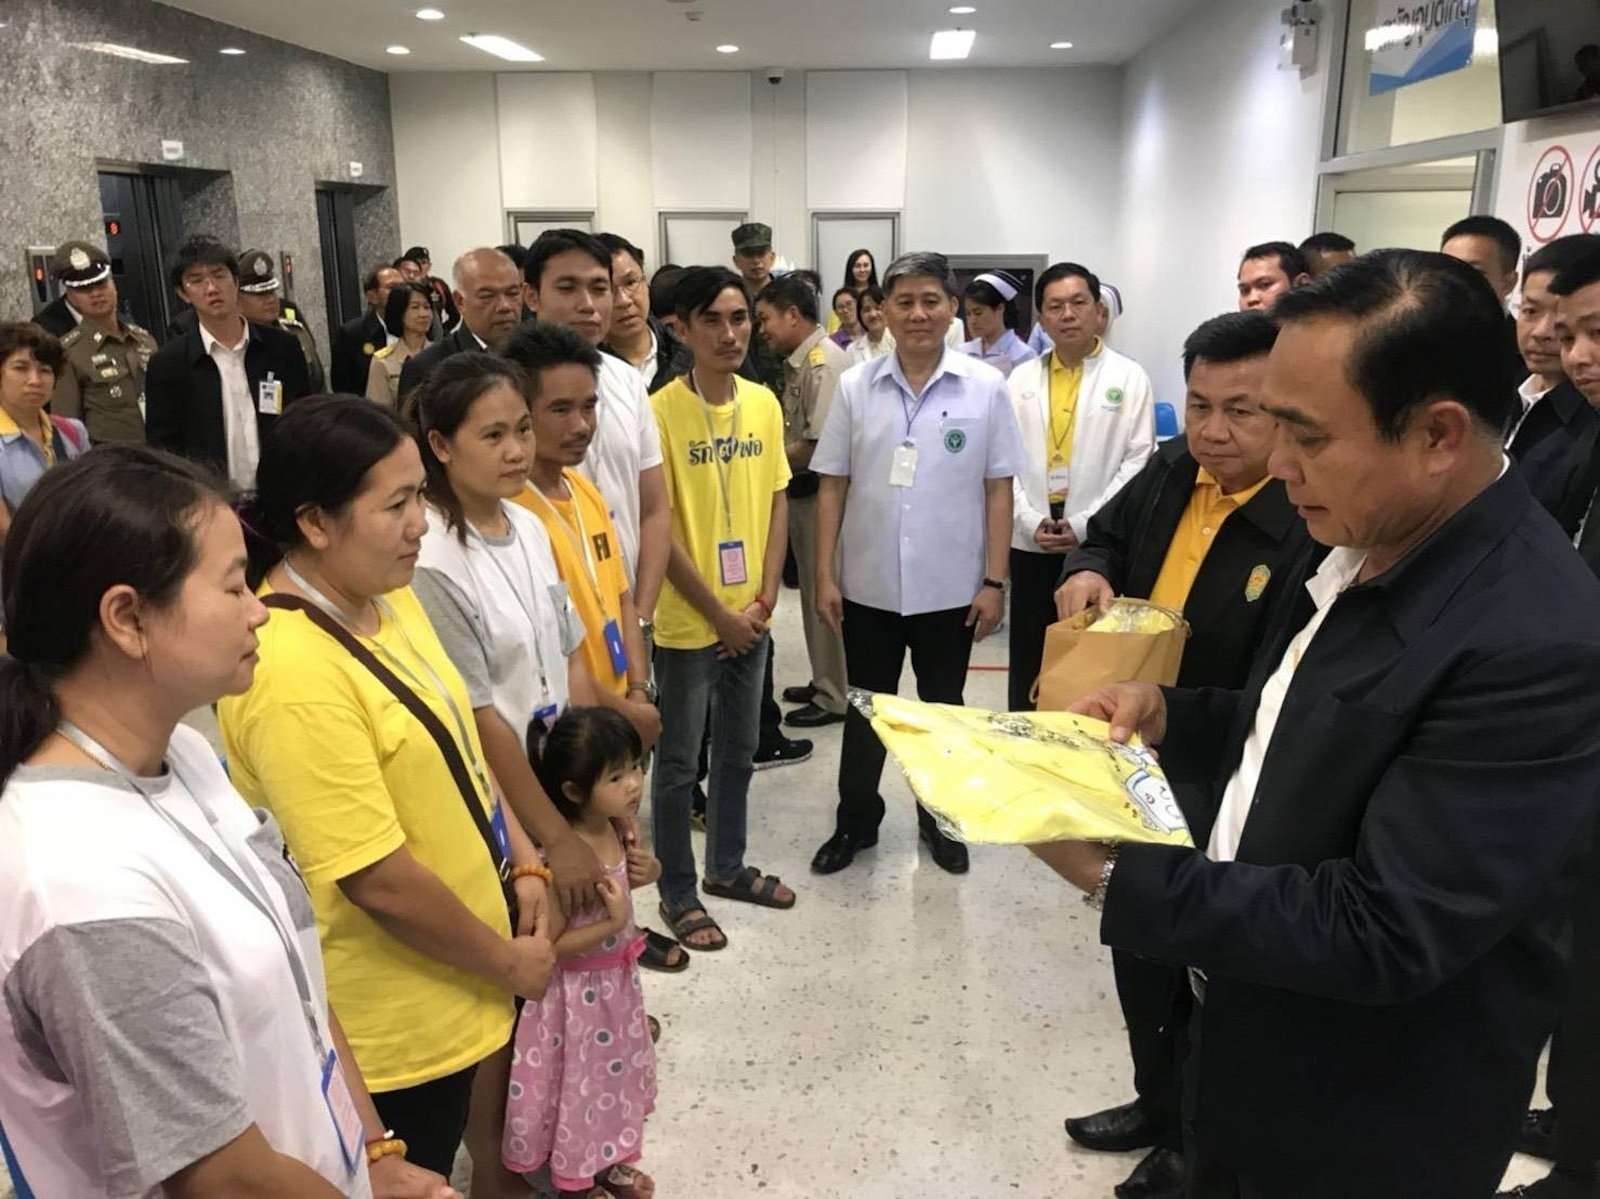 Prime minister Prayut Chan-ocha gives support to the families of the rescued boys and thanks hospital staff for taking care of the Wild Boar soccer team members being treated at the Chiang Rai Prachanookroh hospital.